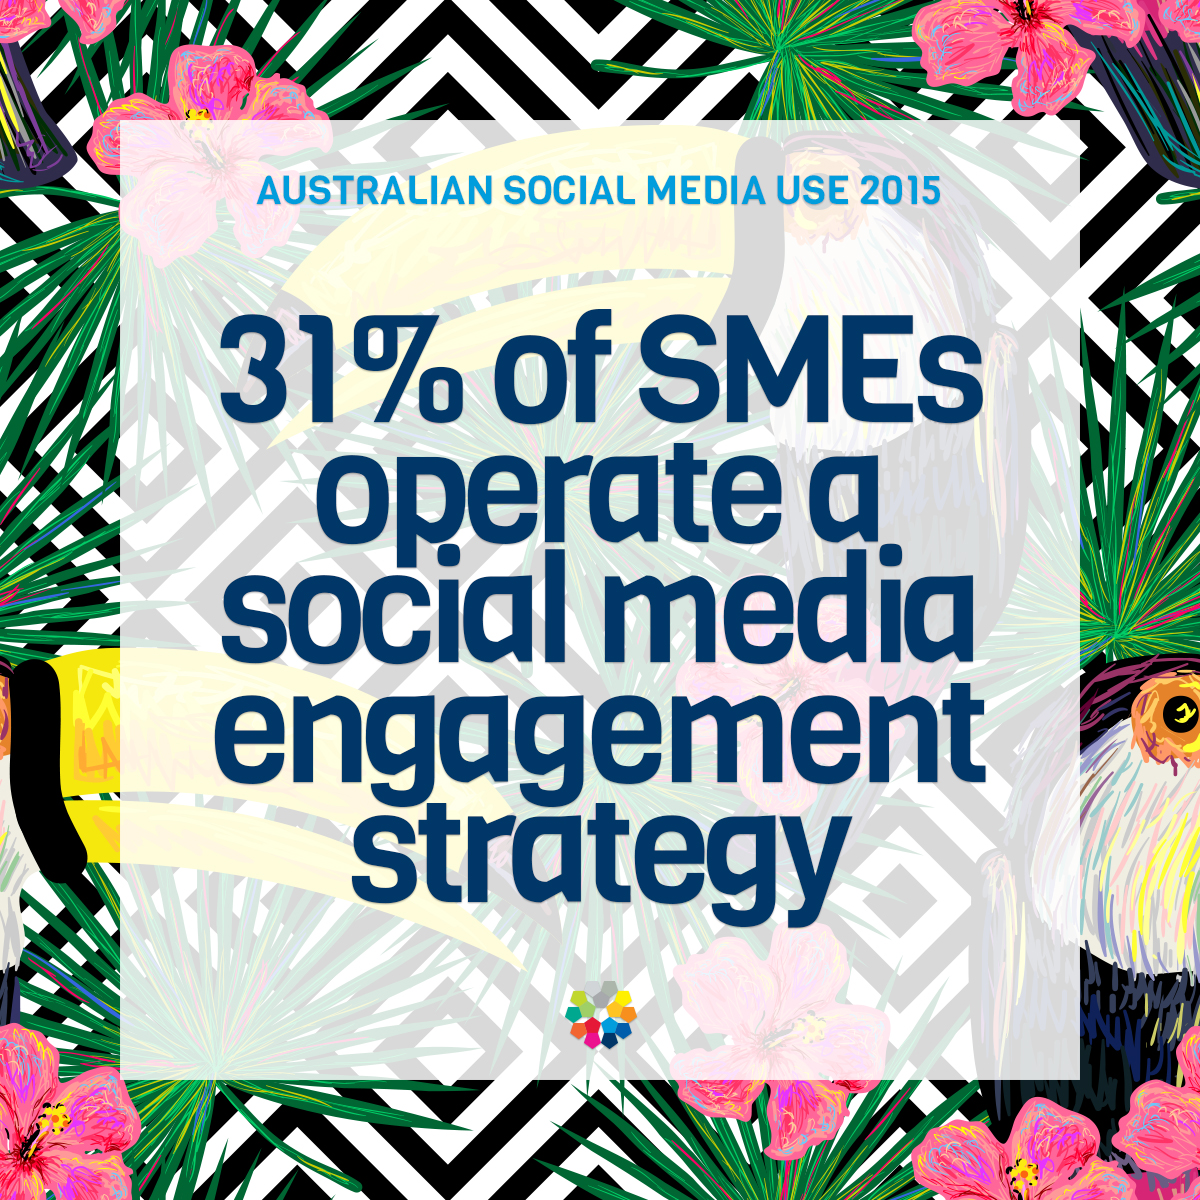 31%-of-SMEs-operate-a-social-media-engagement-strategy